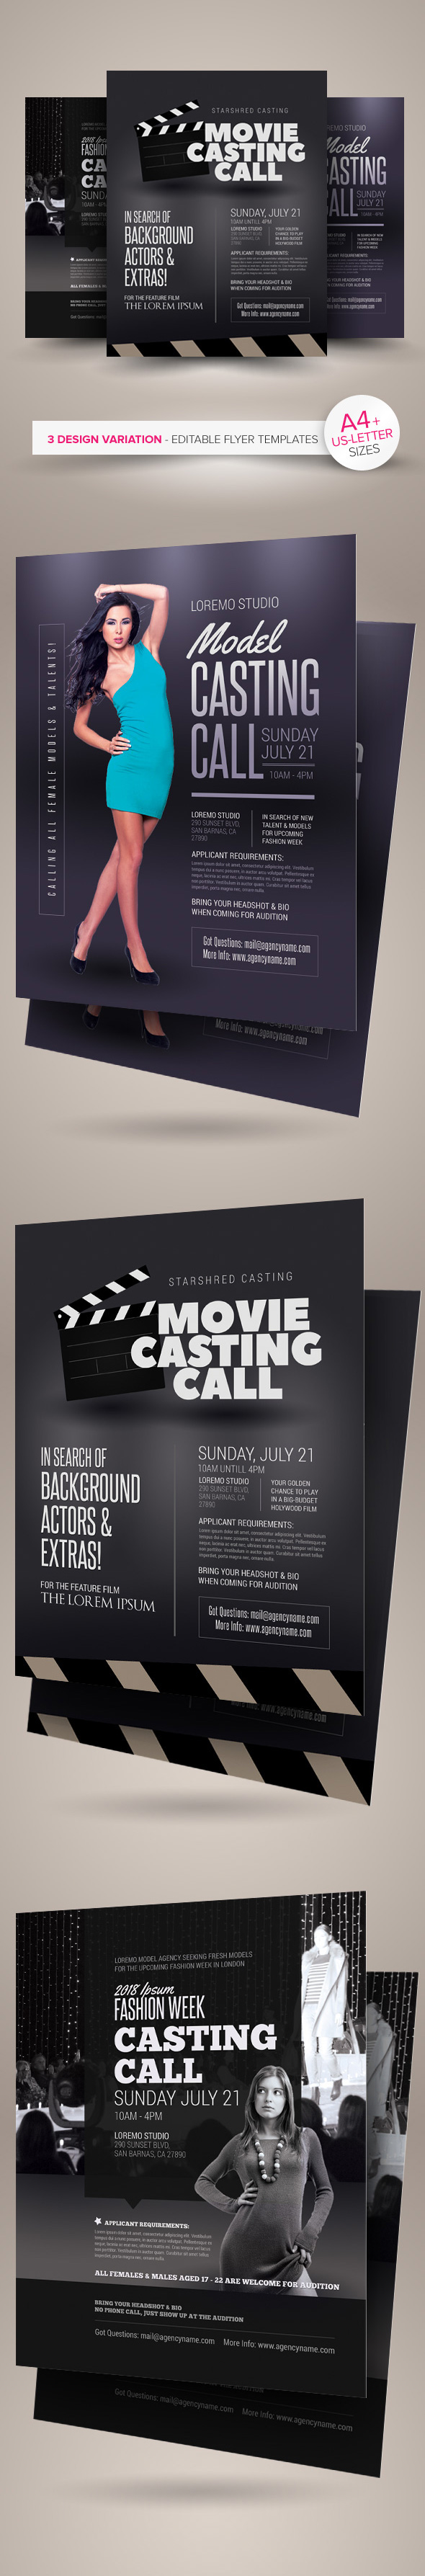 Casting Call Flyer Templates On Behance